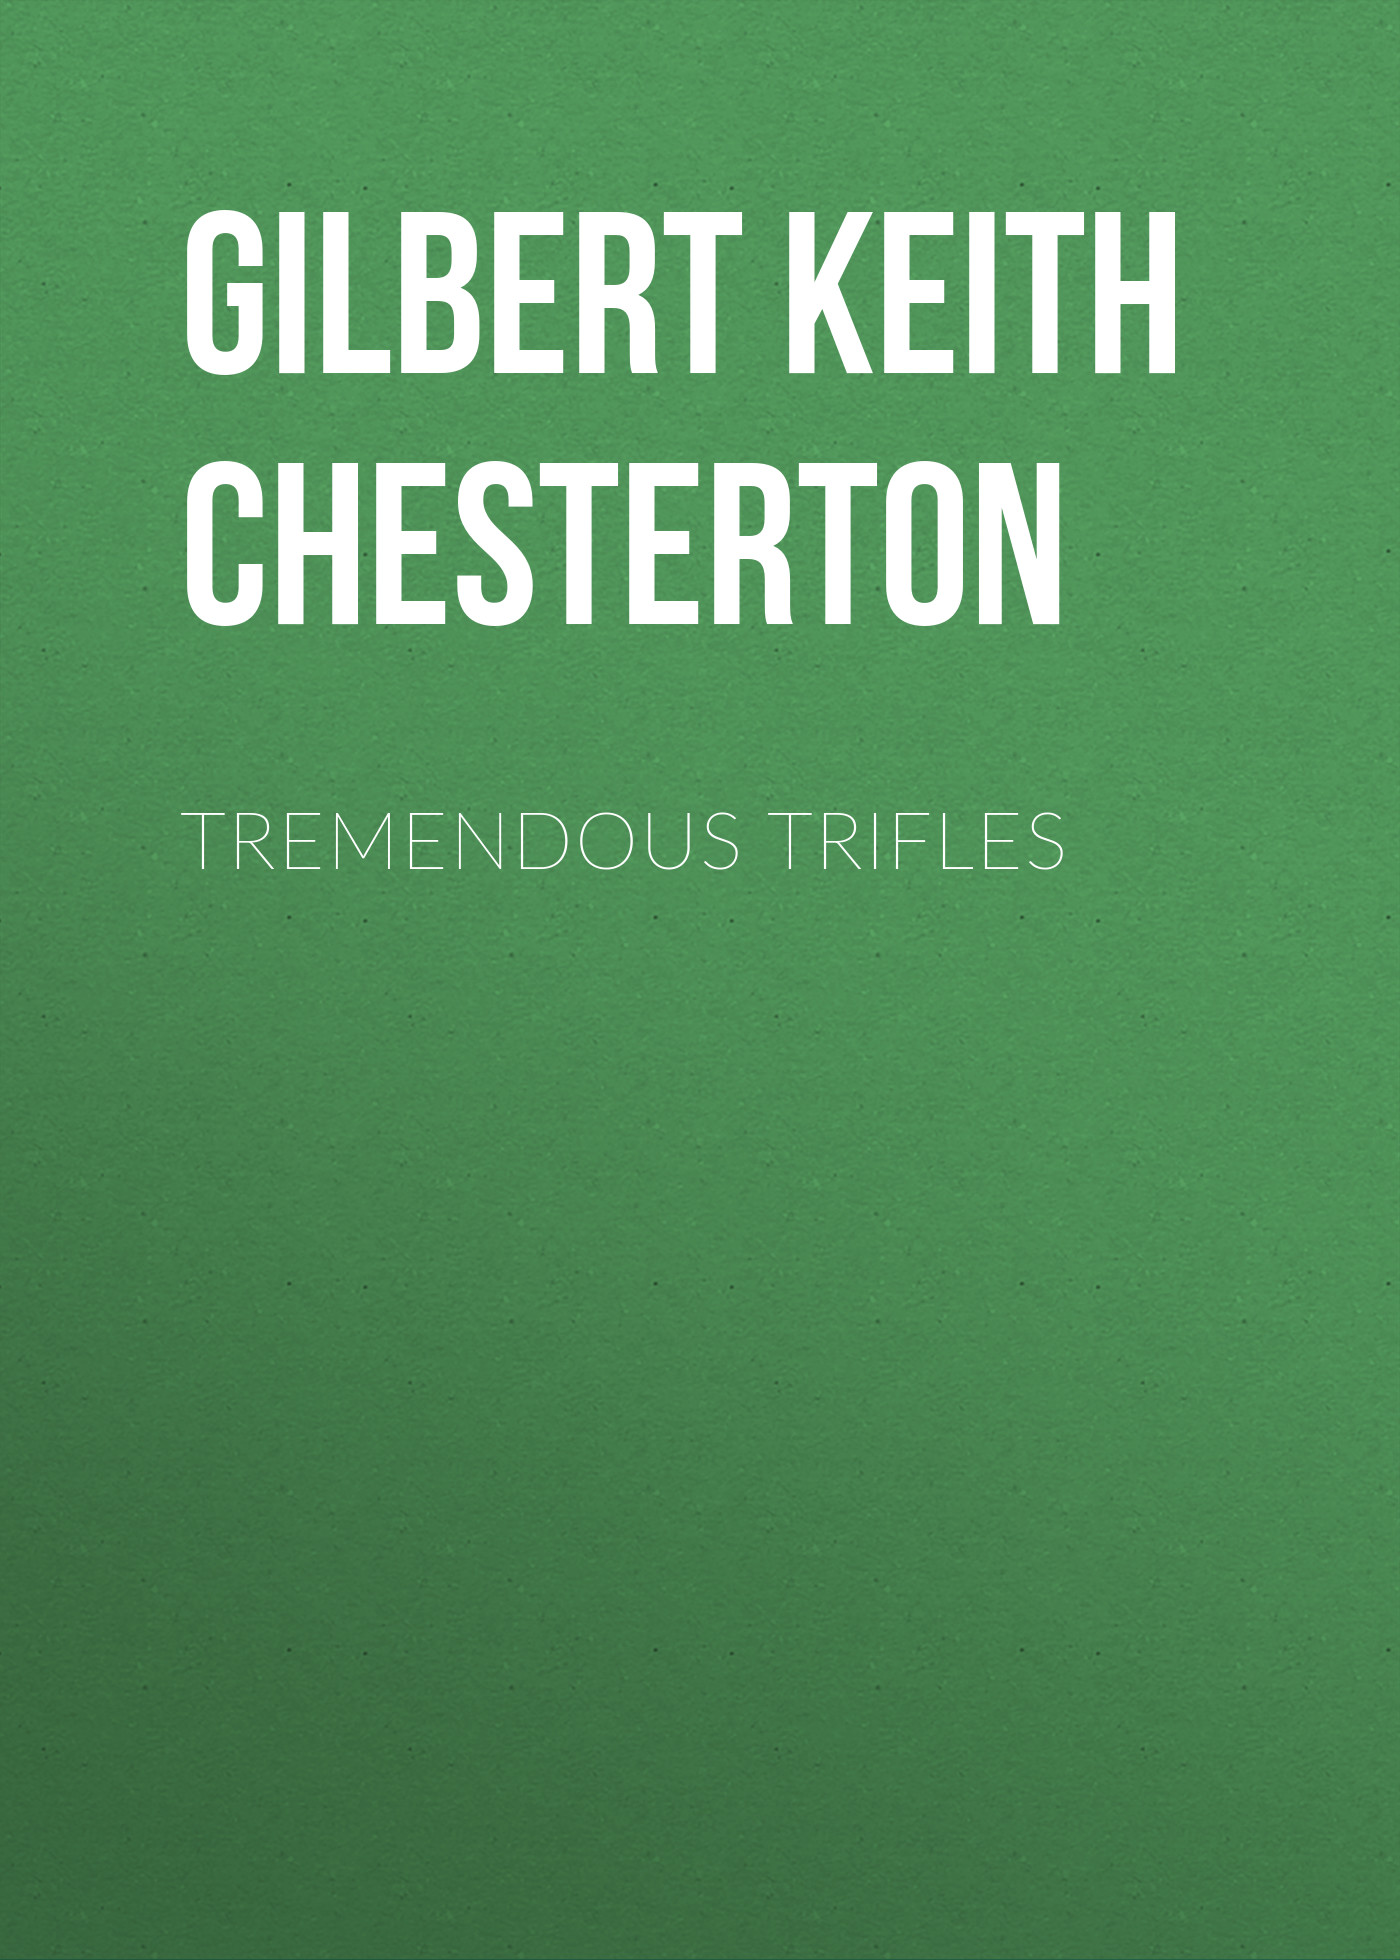 Gilbert Keith Chesterton Tremendous Trifles gilbert keith chesterton o napoleão de notting hill